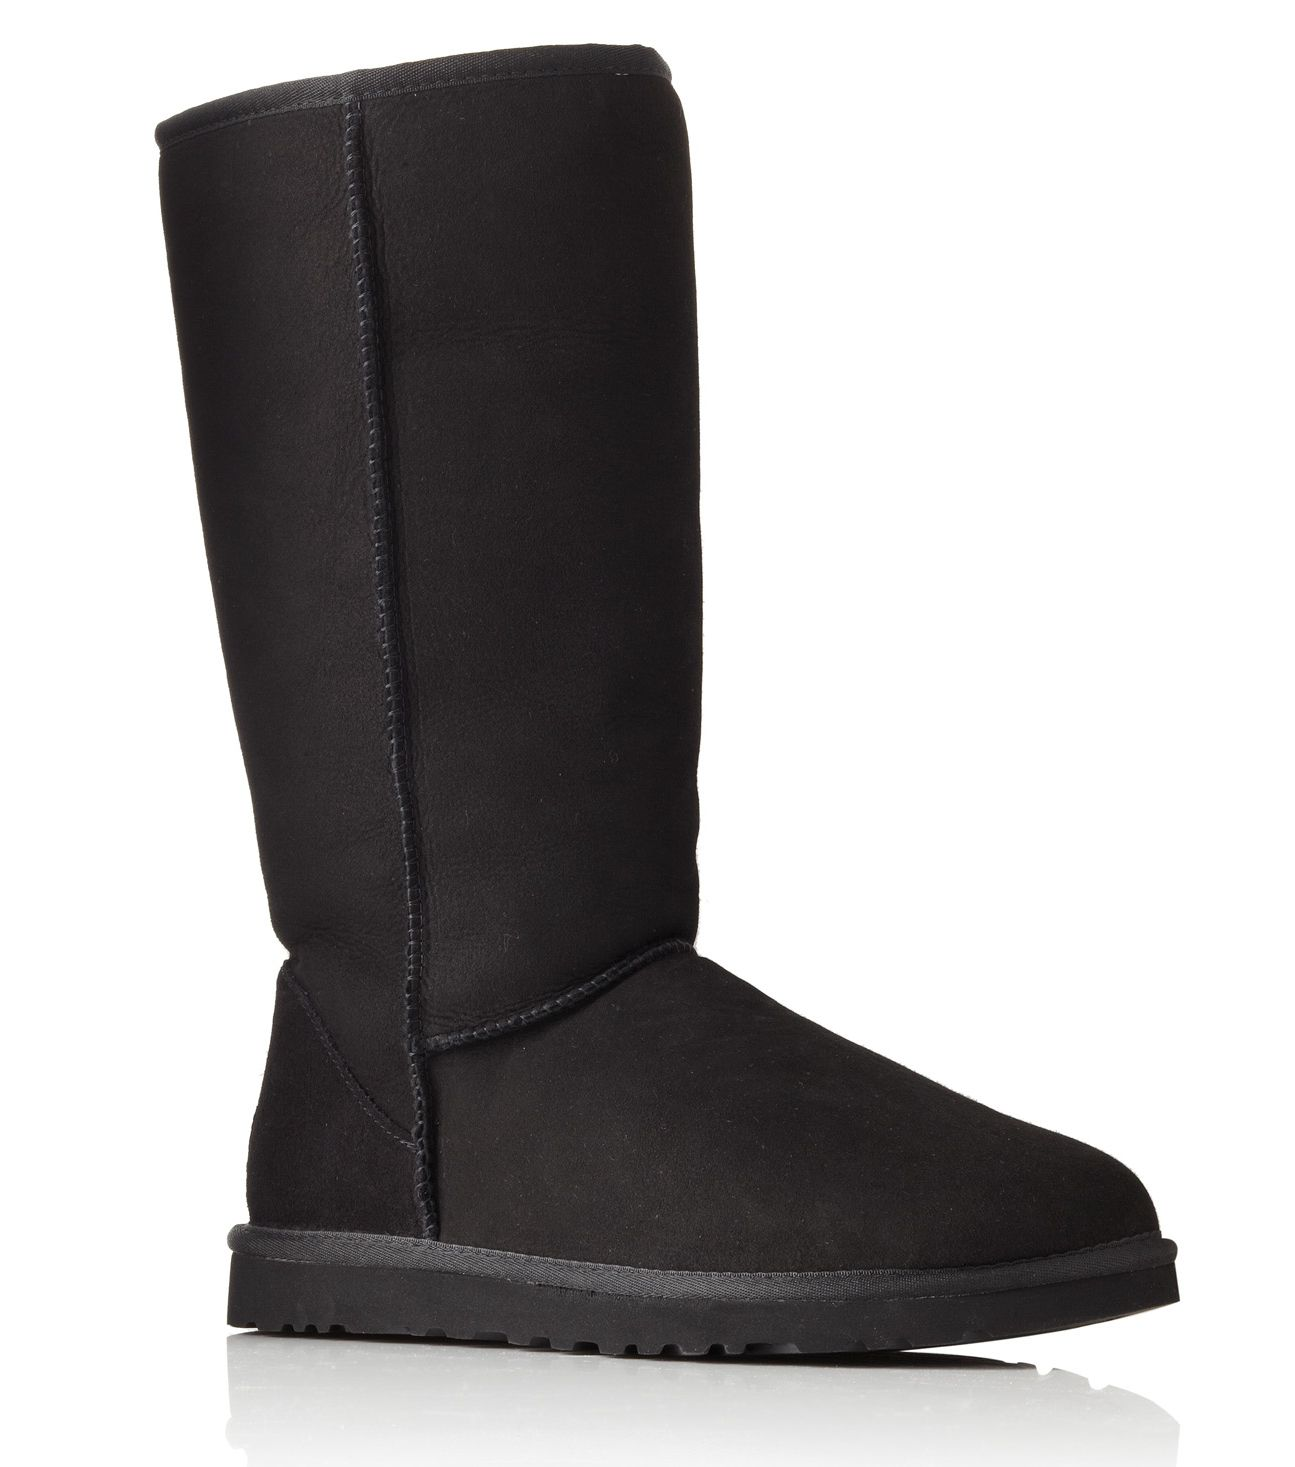 UGG Classic tall boots, Black -  Birthday Your Proposal - Engagement Gifts